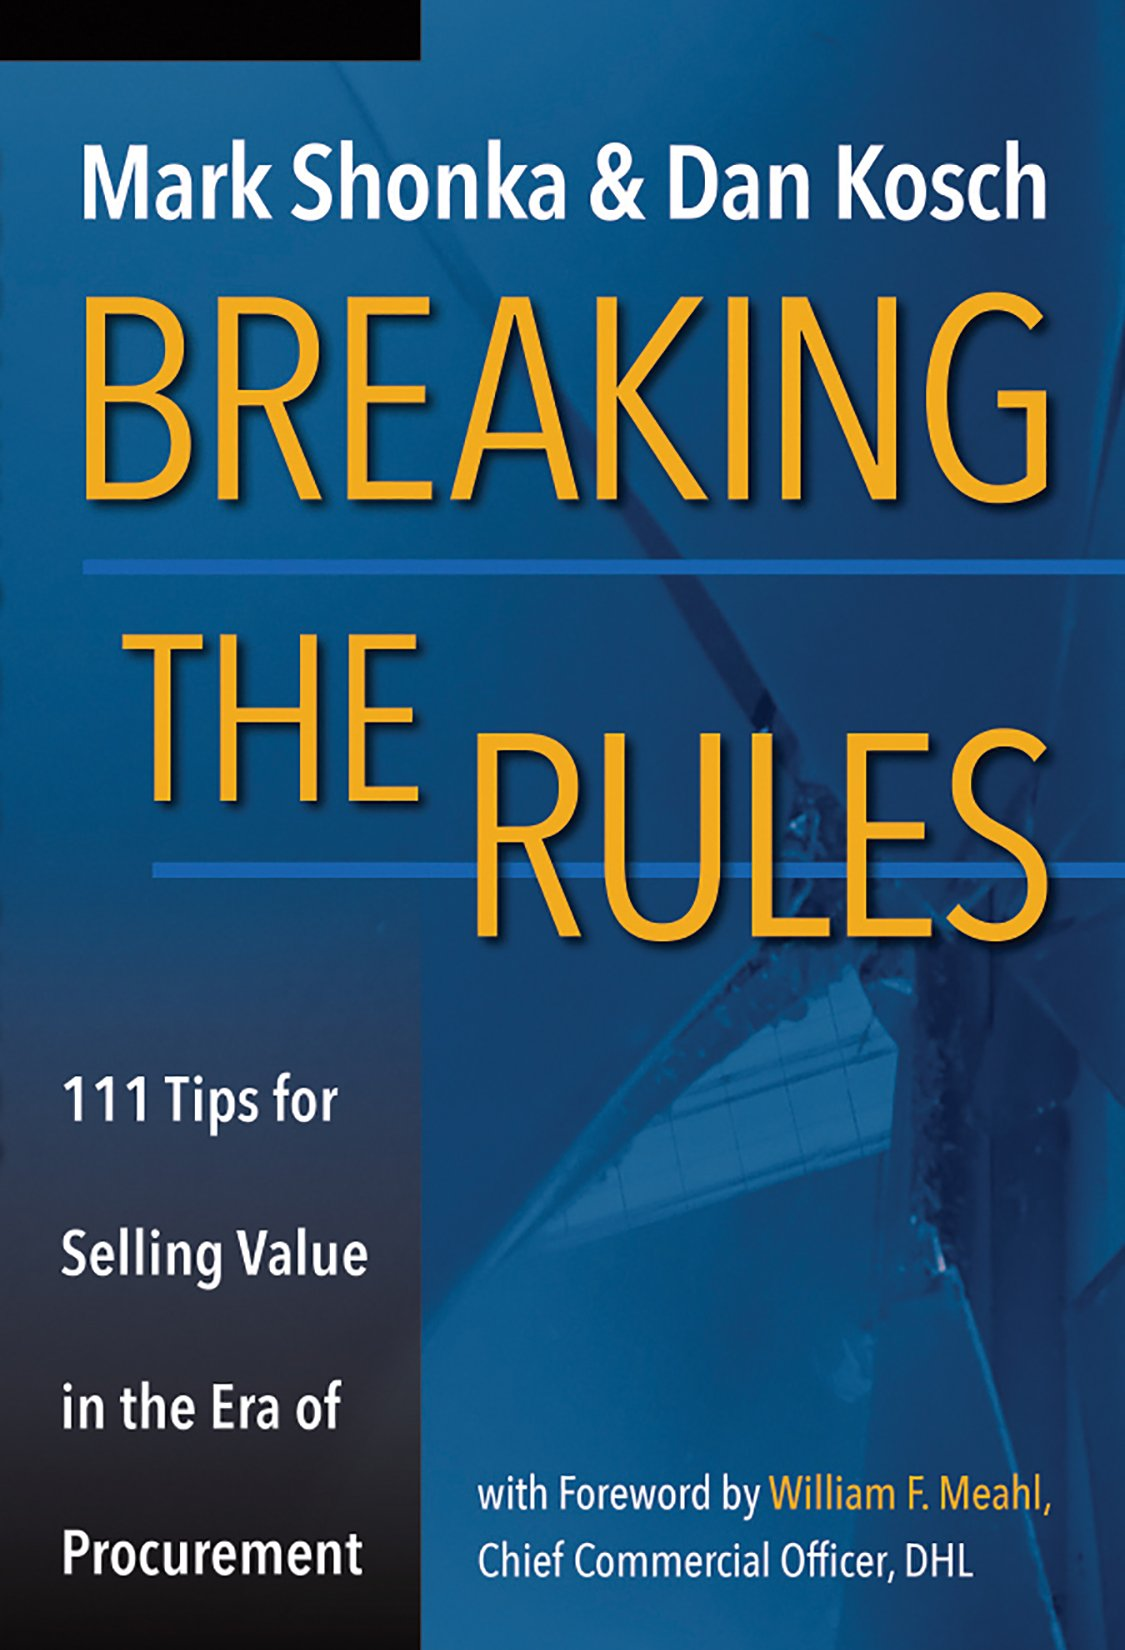 Breaking The Rules: 111 Tips for Selling Value in the Era of Procurement